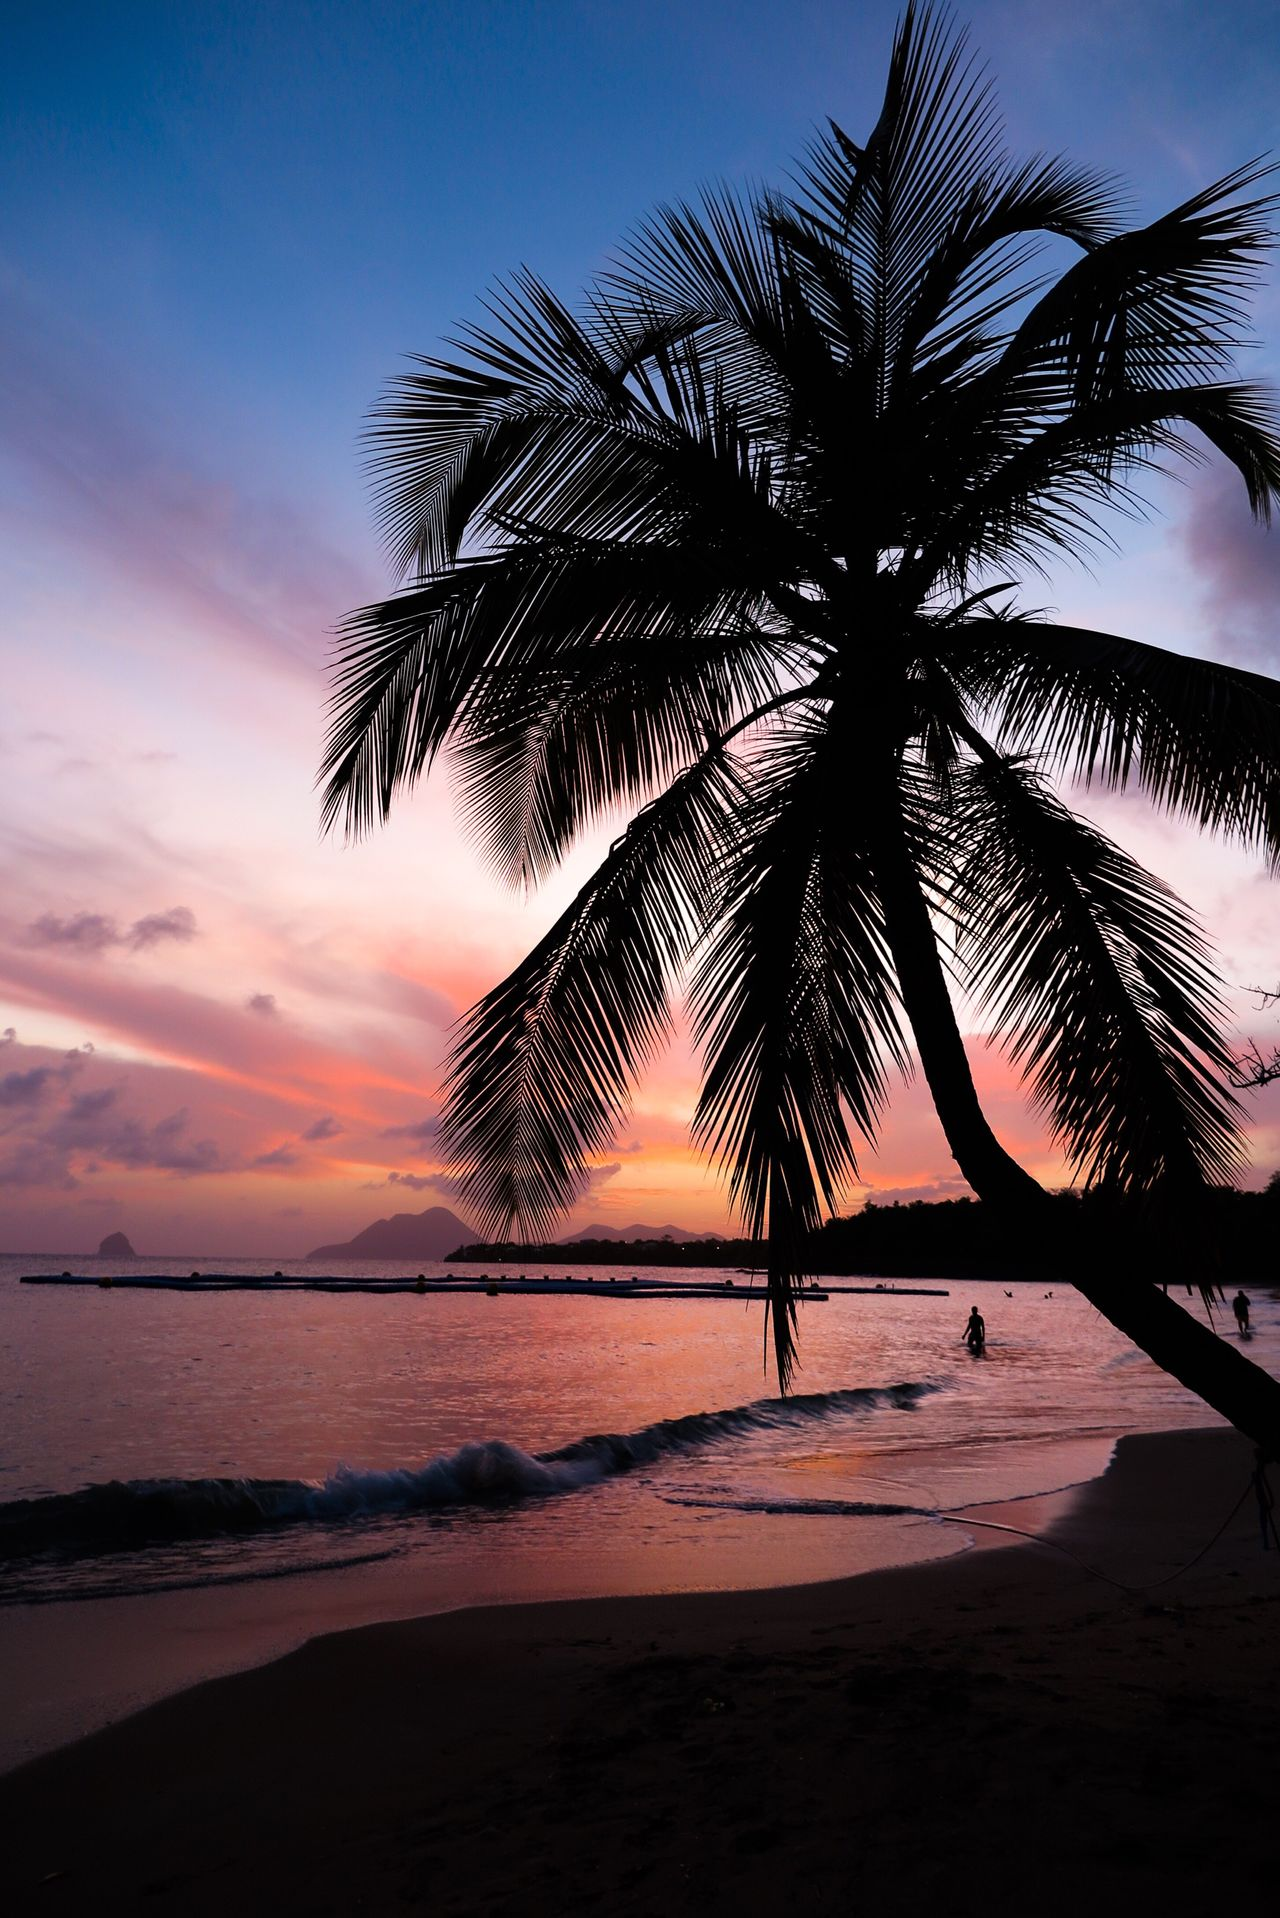 The Great Outdoors With Adobe The Great Outdoors - 2016 EyeEm Awards Pretty Sunset in Martinique 💗 Ocean Palm Tree